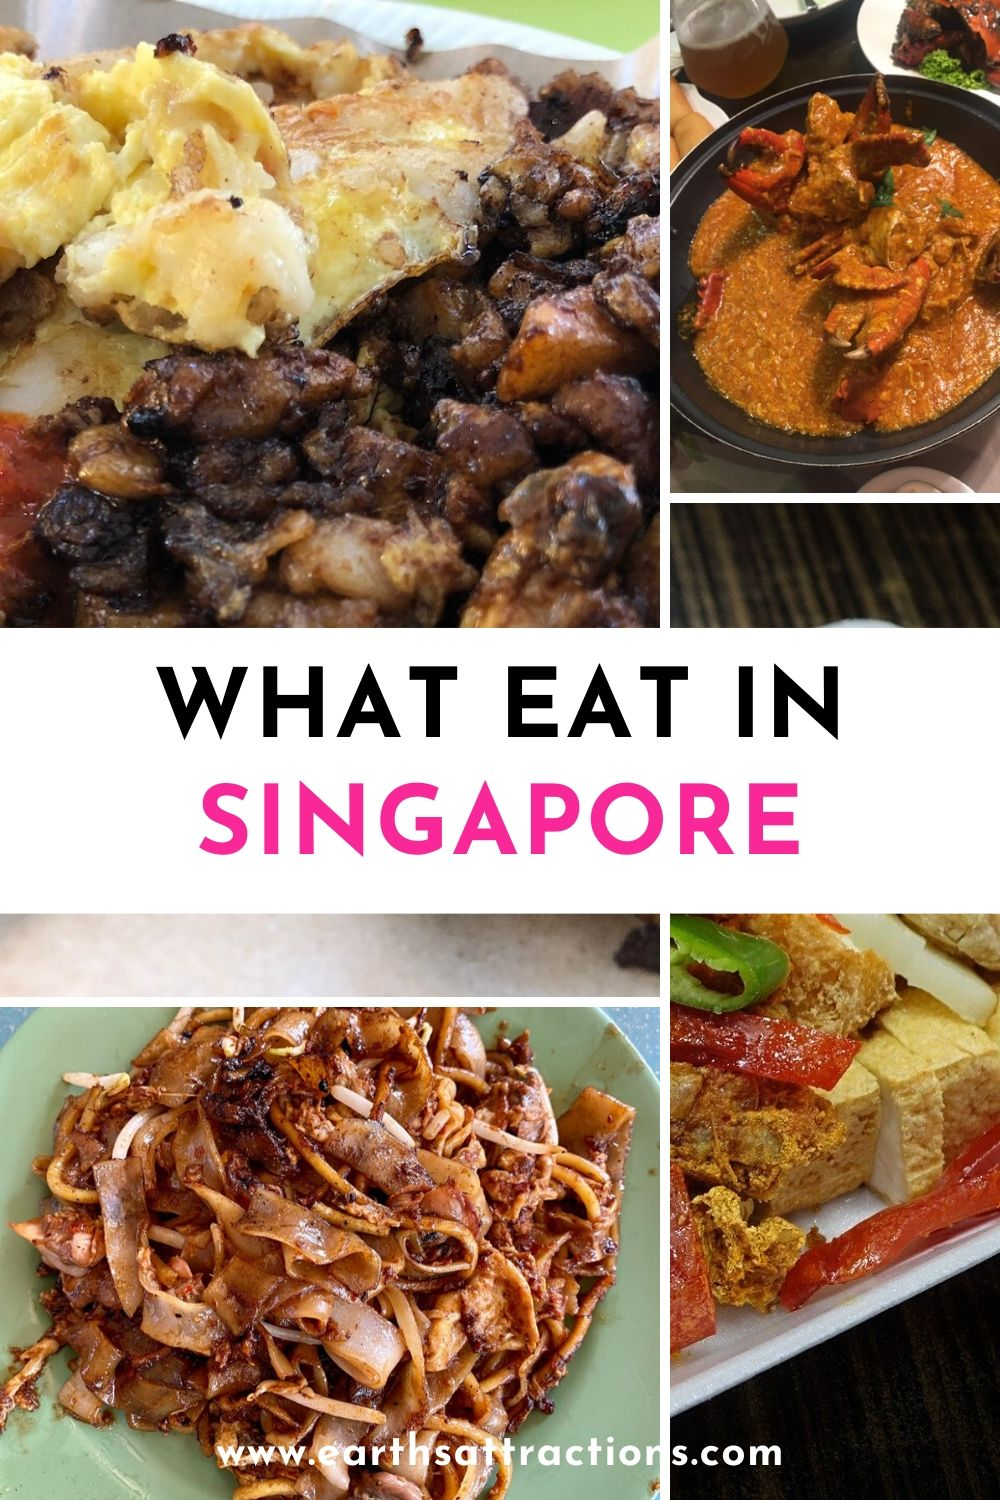 Food in Singapore: 8 tasty Singaporean dishes to try. From Hainanese Chicken Rice to Satay, from Chili Crab to carrot cake and beyond, discover what to eat in Singapore. #singapore #asia #singaporedishes #food #singaporefood #singaporeeat